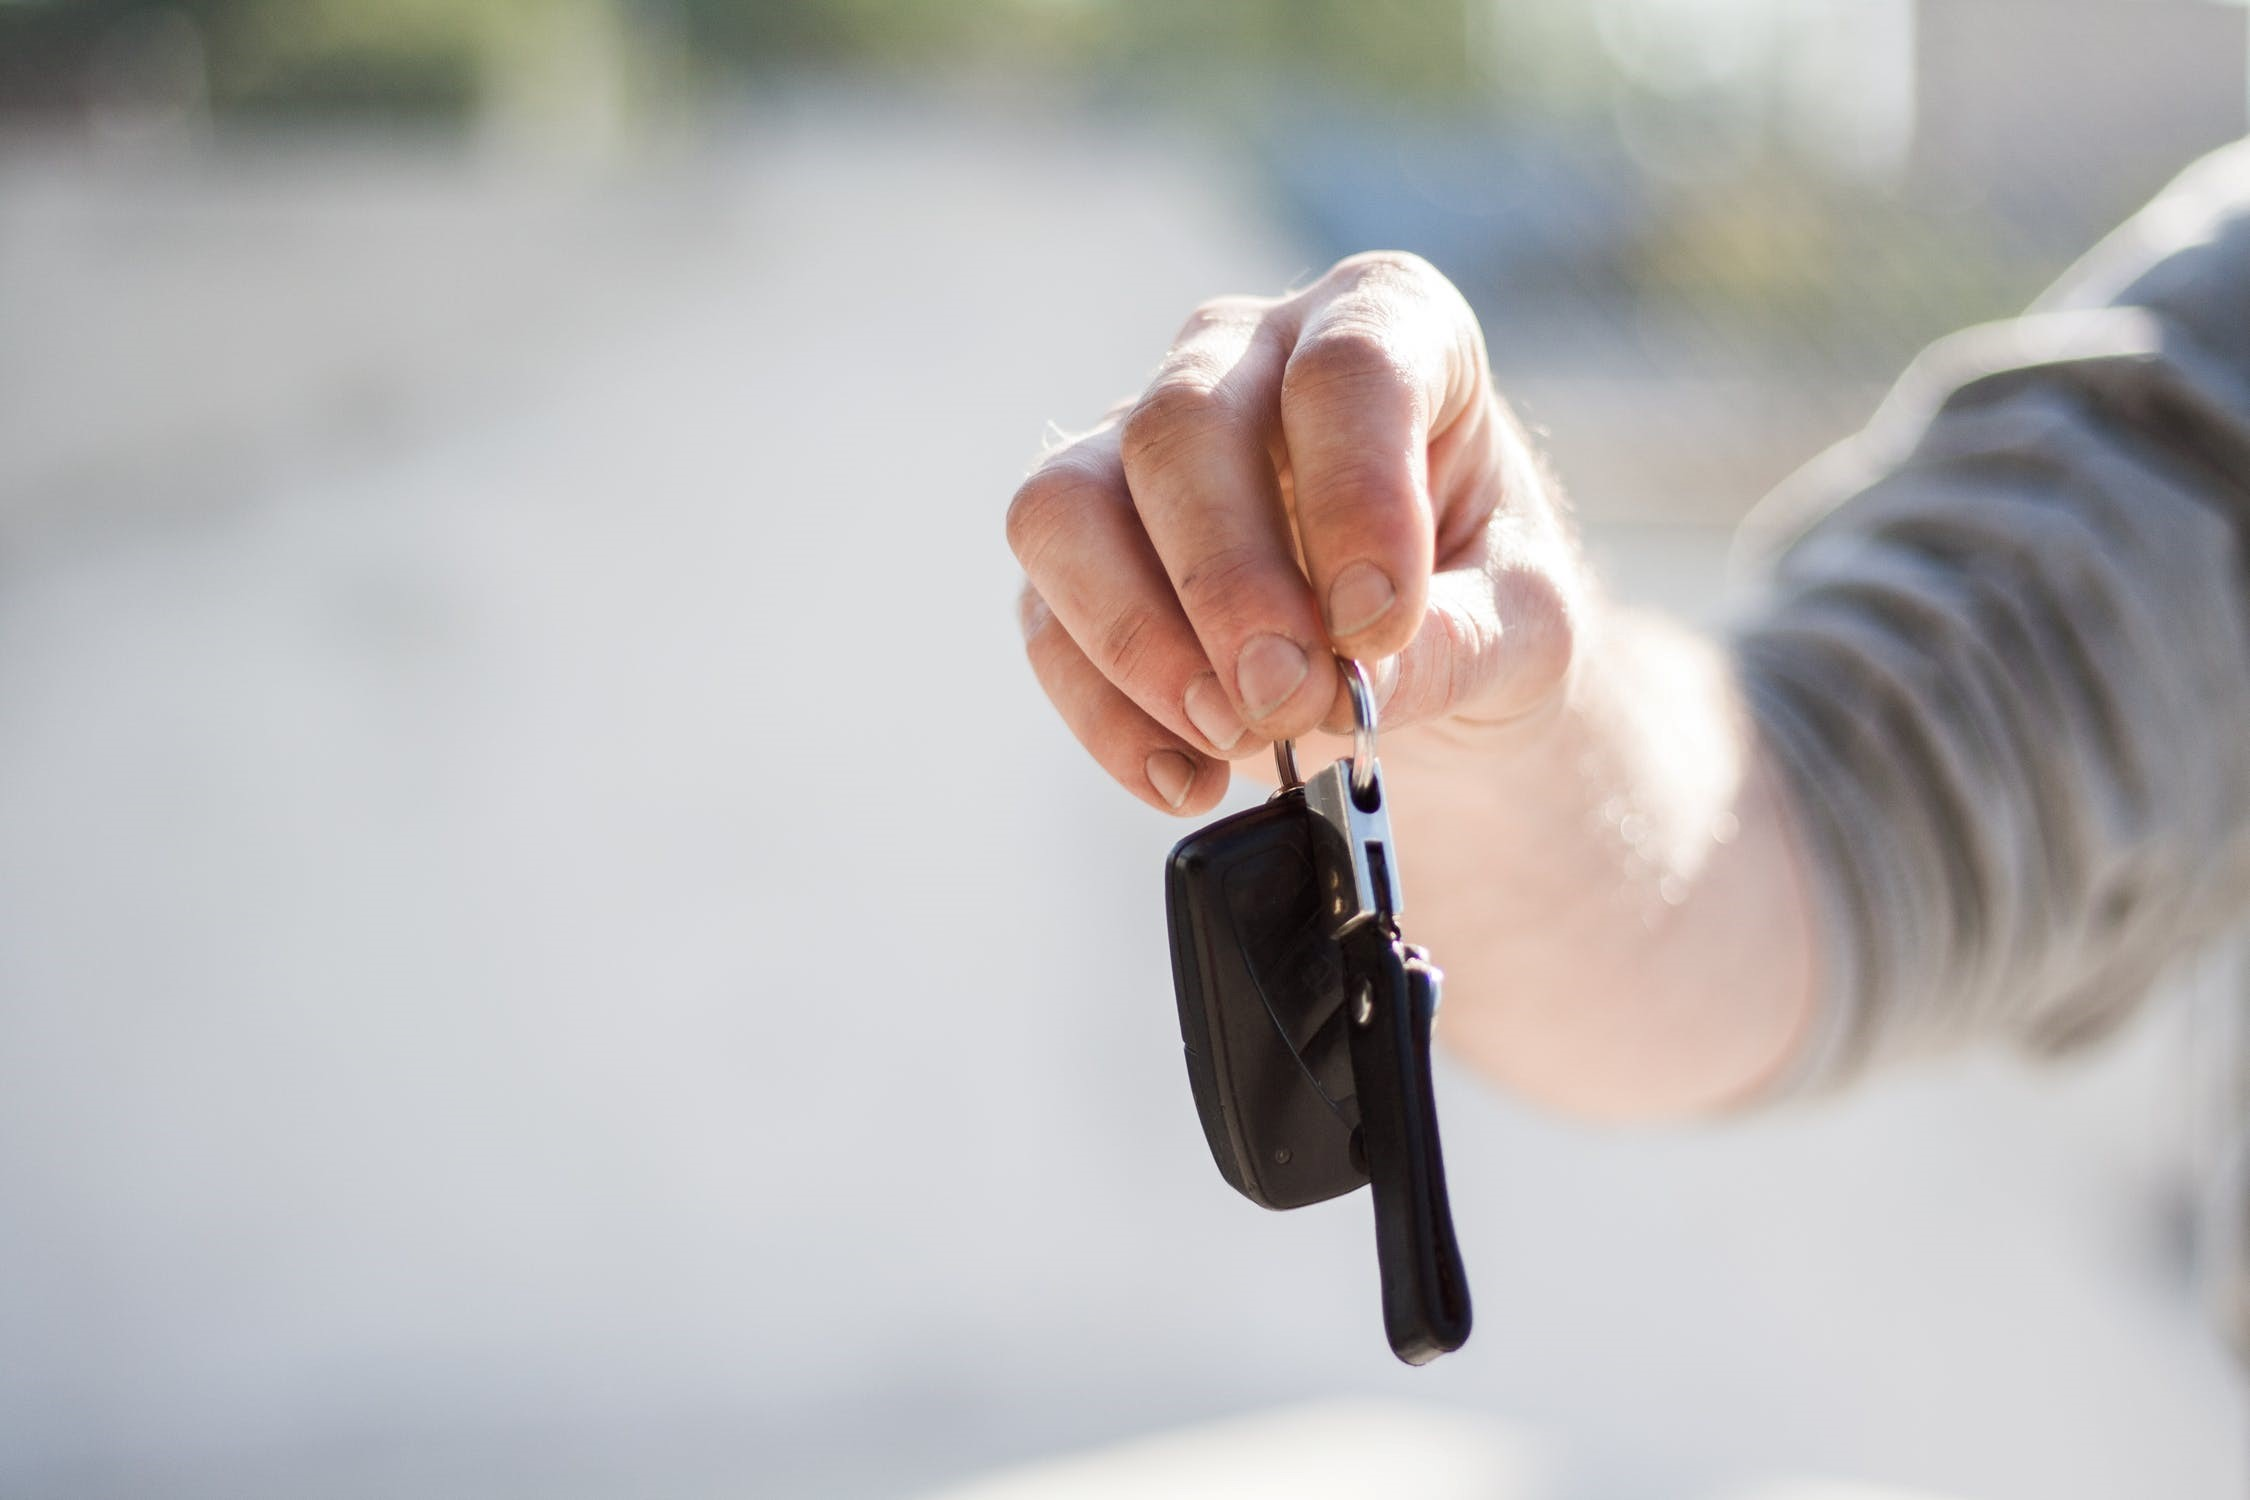 Learn more about car loans in Canada so that your new car doesn't end up being your newest nightmare